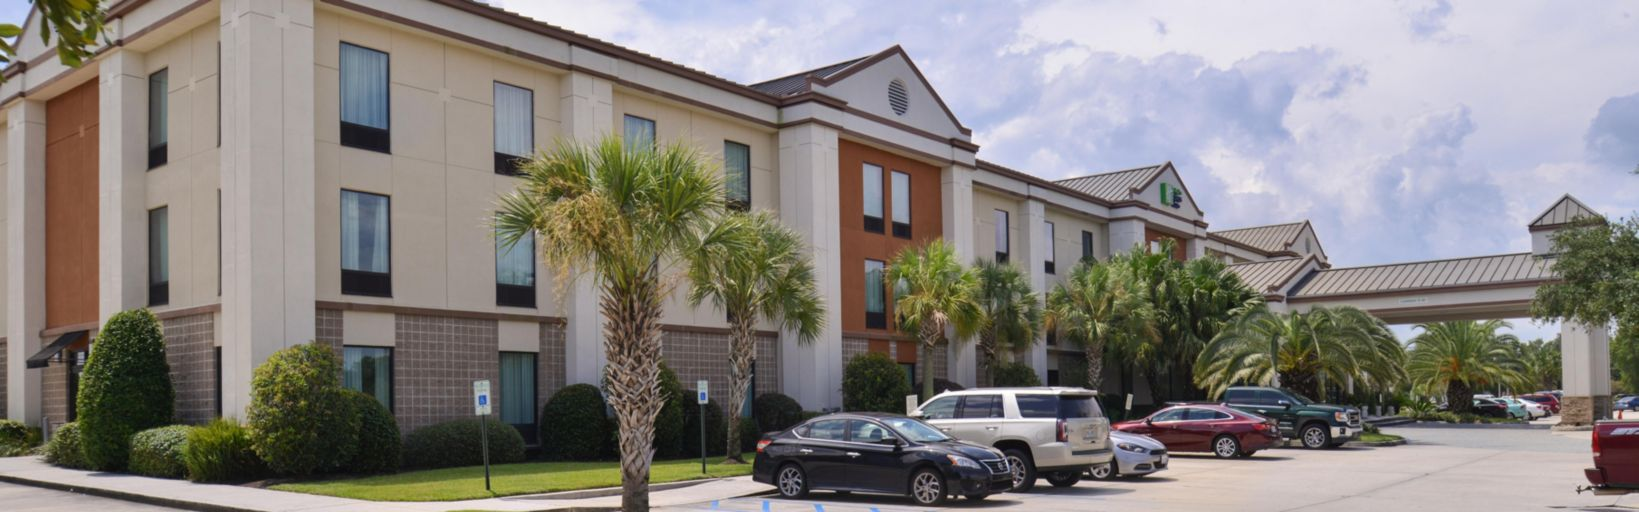 Holiday Inn Express & Suites New Orleans Airport South Hotel by IHG